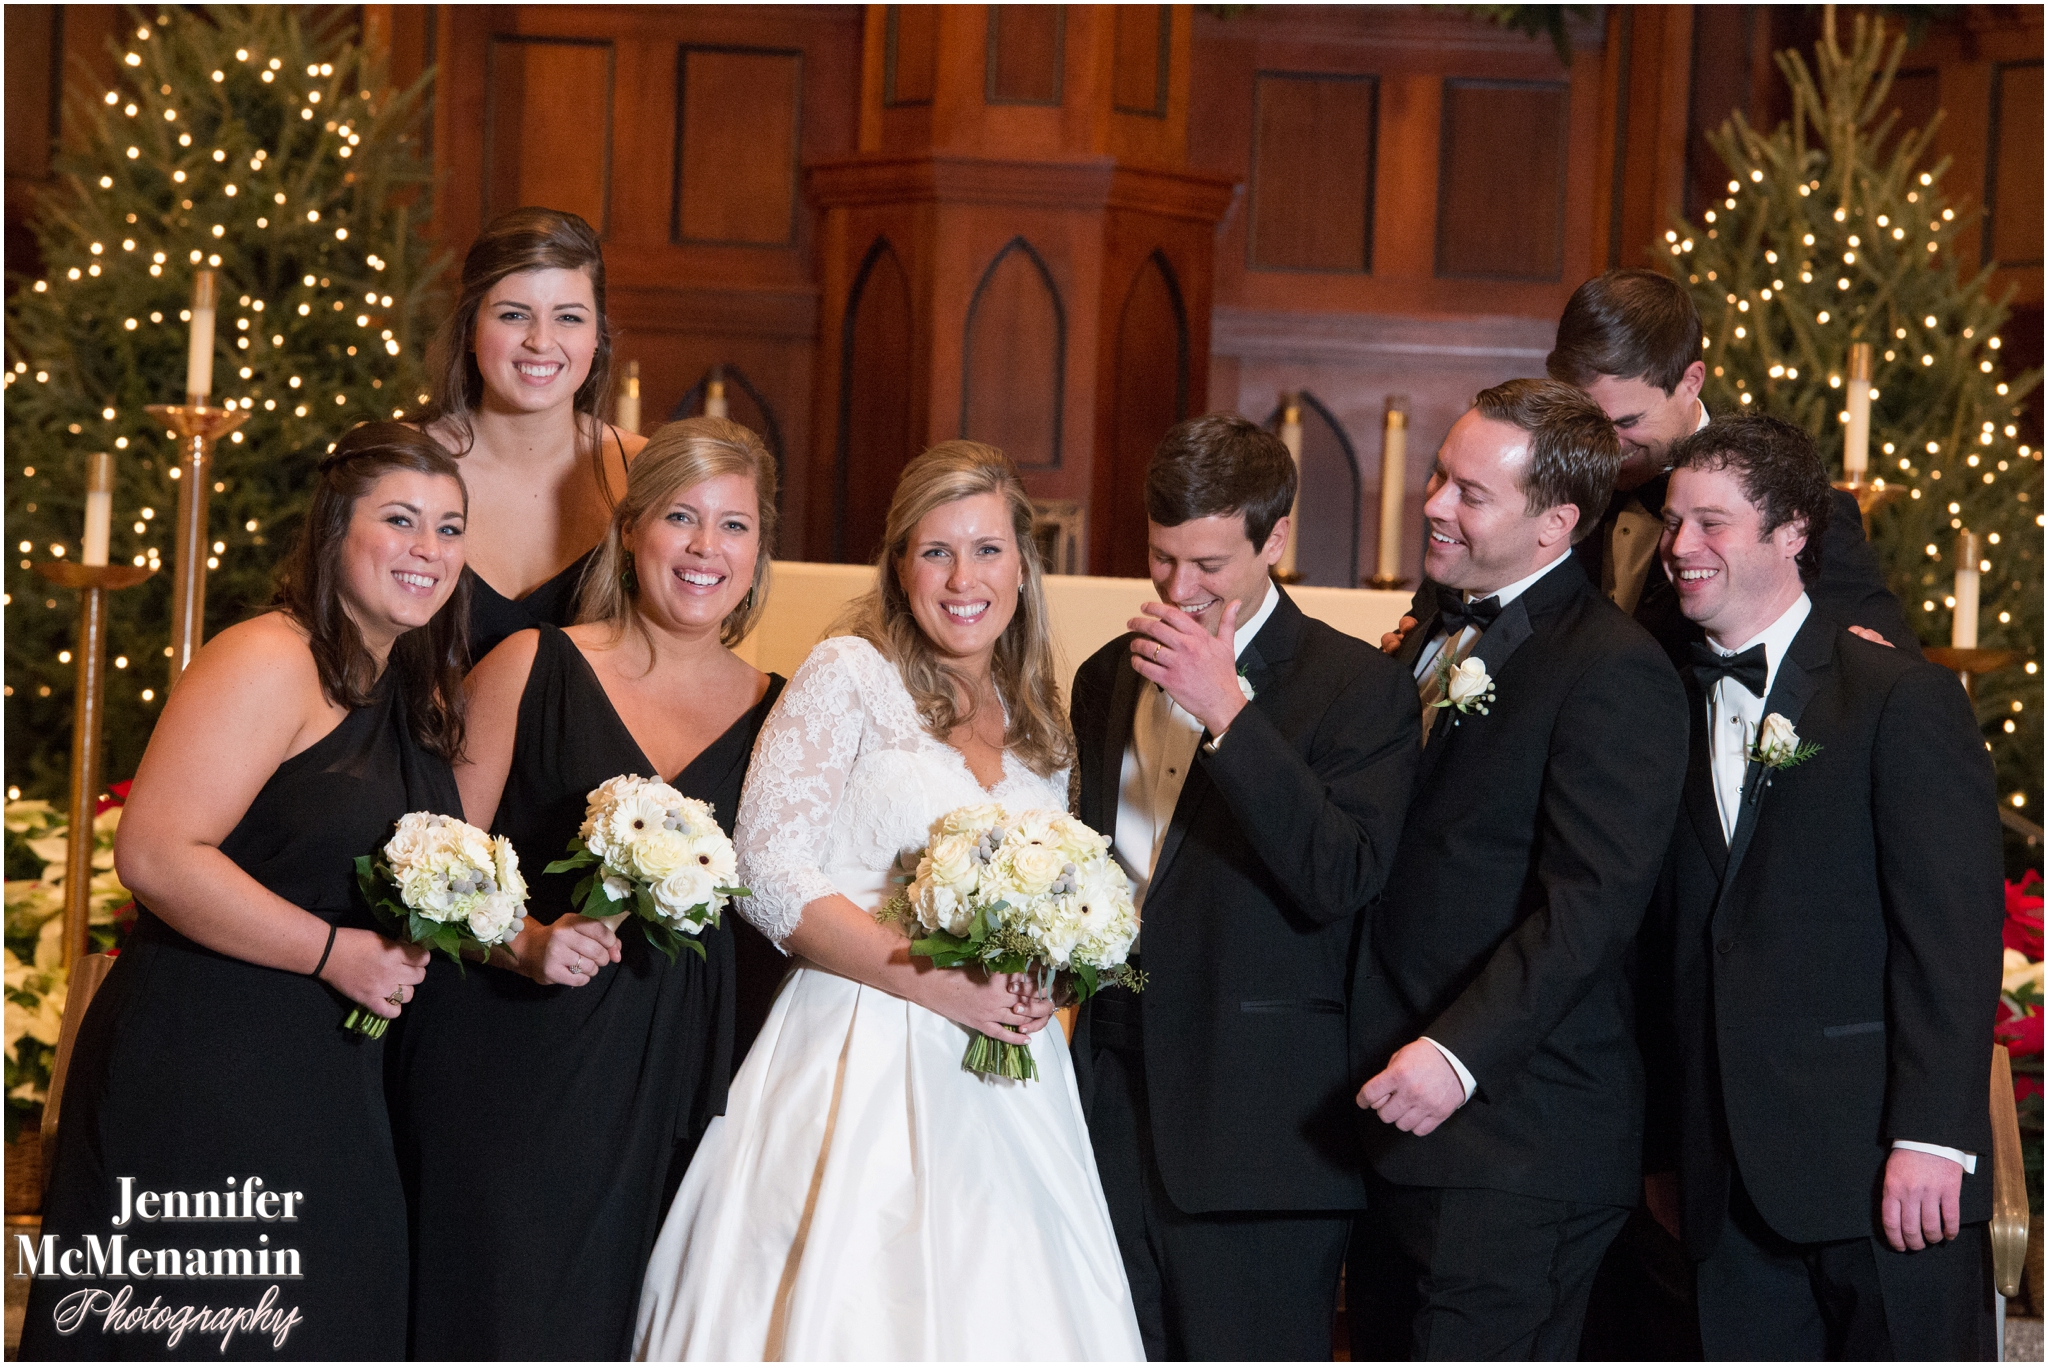 0060_RyanClemmens_01781-0475_JenniferMcMenaminPhotography_Immaculate-Conception-Church_The-Cloisters_Baltimore-wedding-photography_Baltimore-wedding-photographer